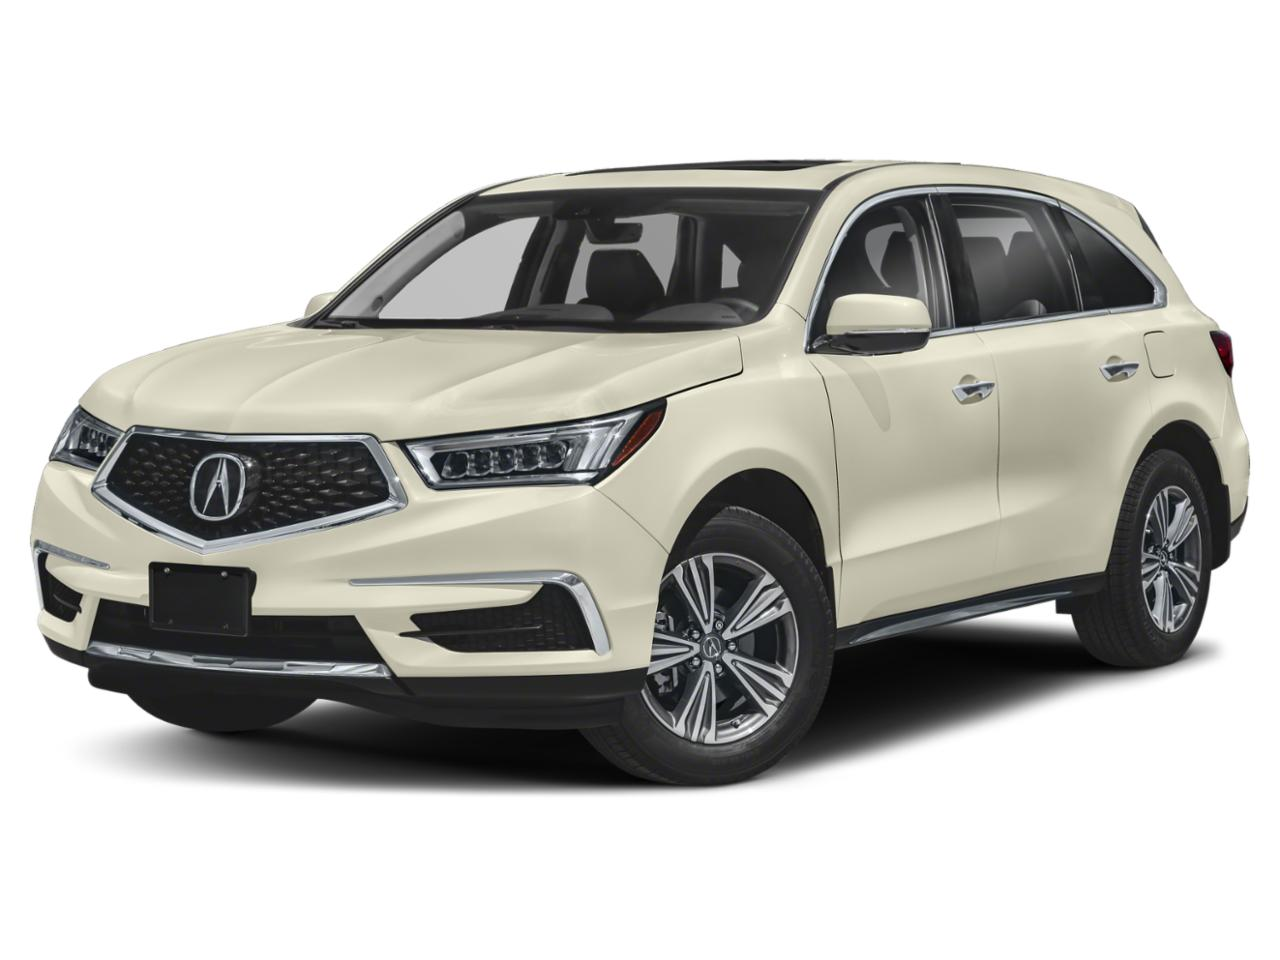 2019 Acura MDX Vehicle Photo in Grapevine, TX 76051